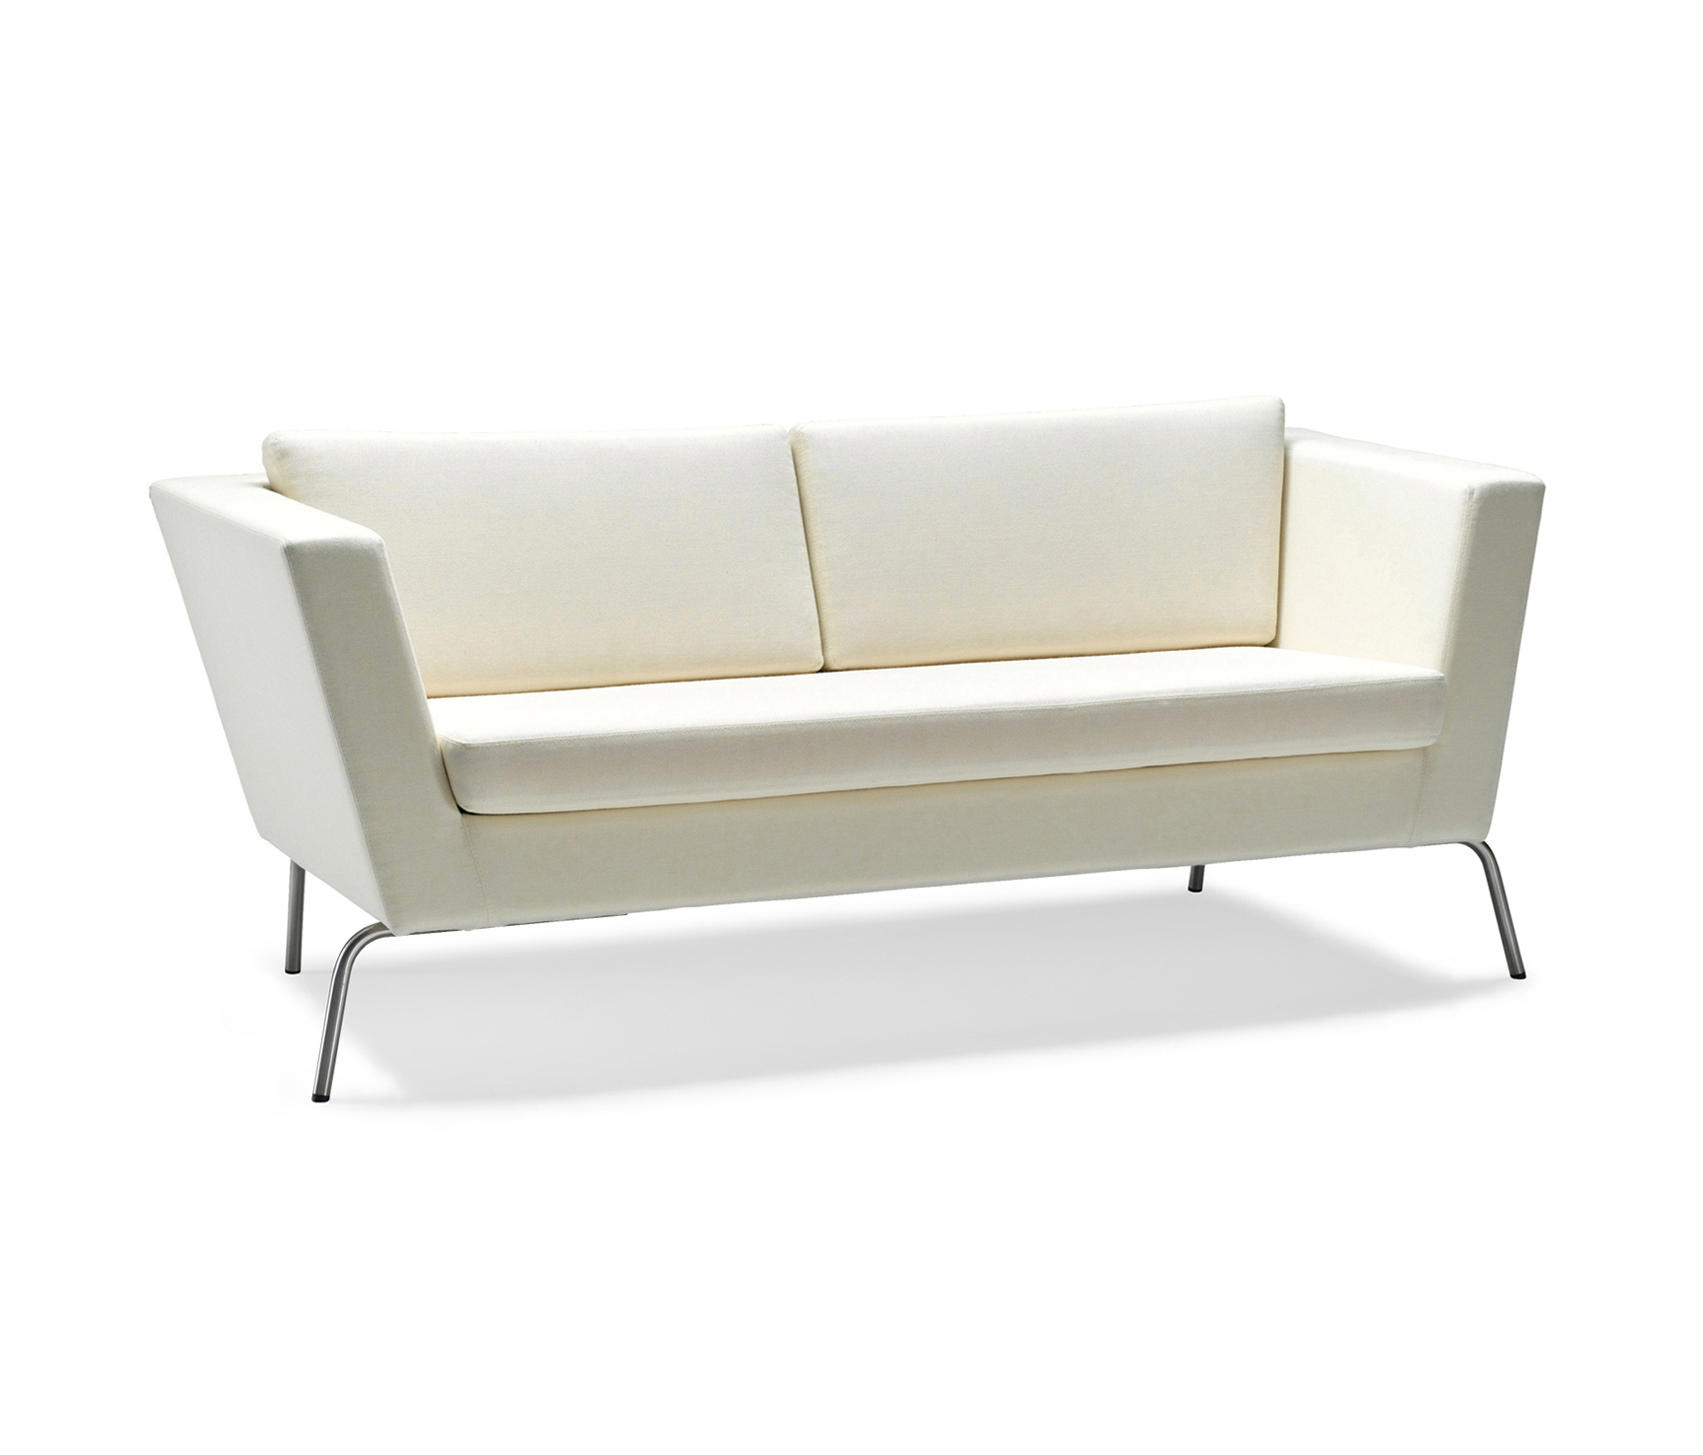 wide sofas jetton sofa from stouby architonic by